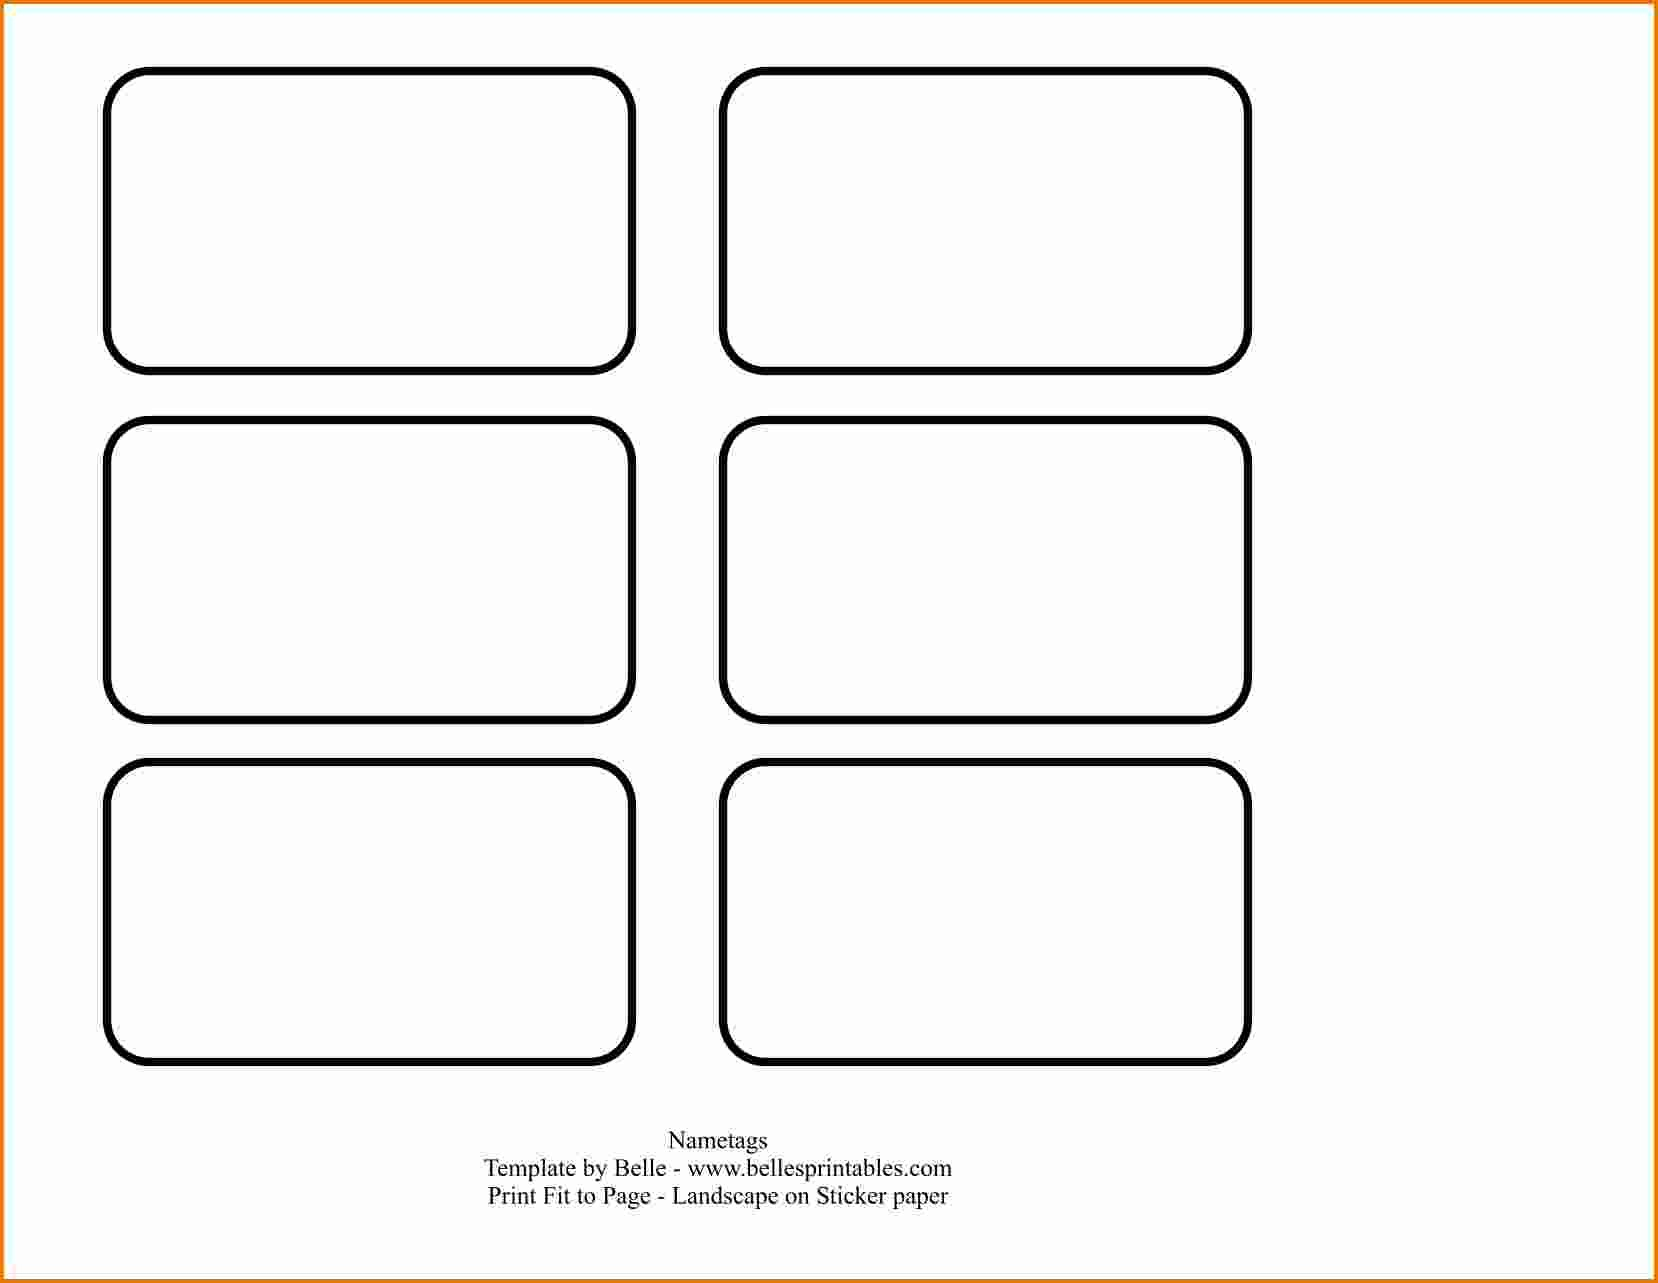 Free Online Label Templates Template Ideas Photo Printable In Online Labels Template